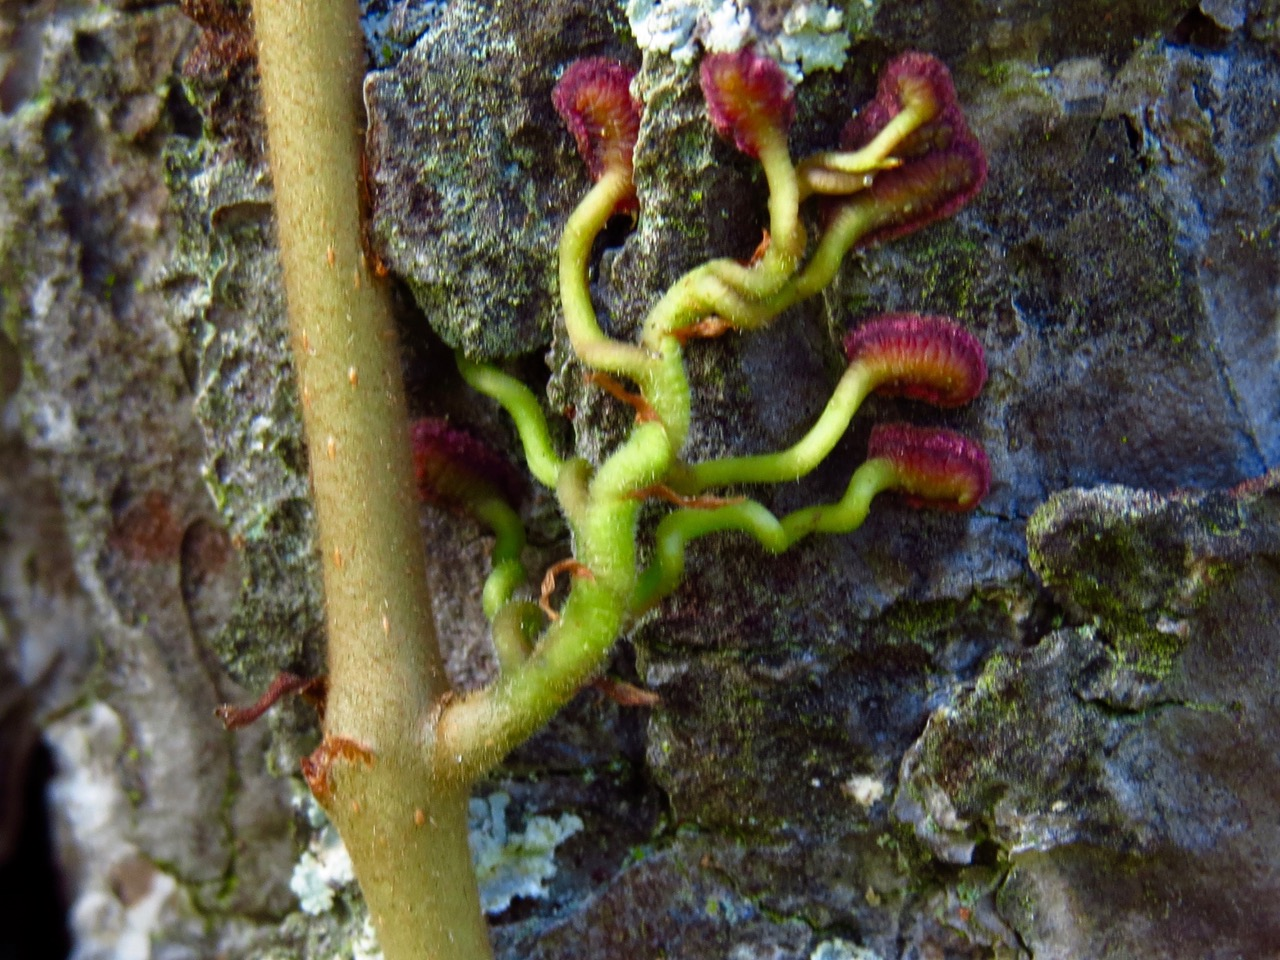 Close-up of Virginia creeper tendril with pads (photo credit: Dale Hoyt, Nature Rambling blog).